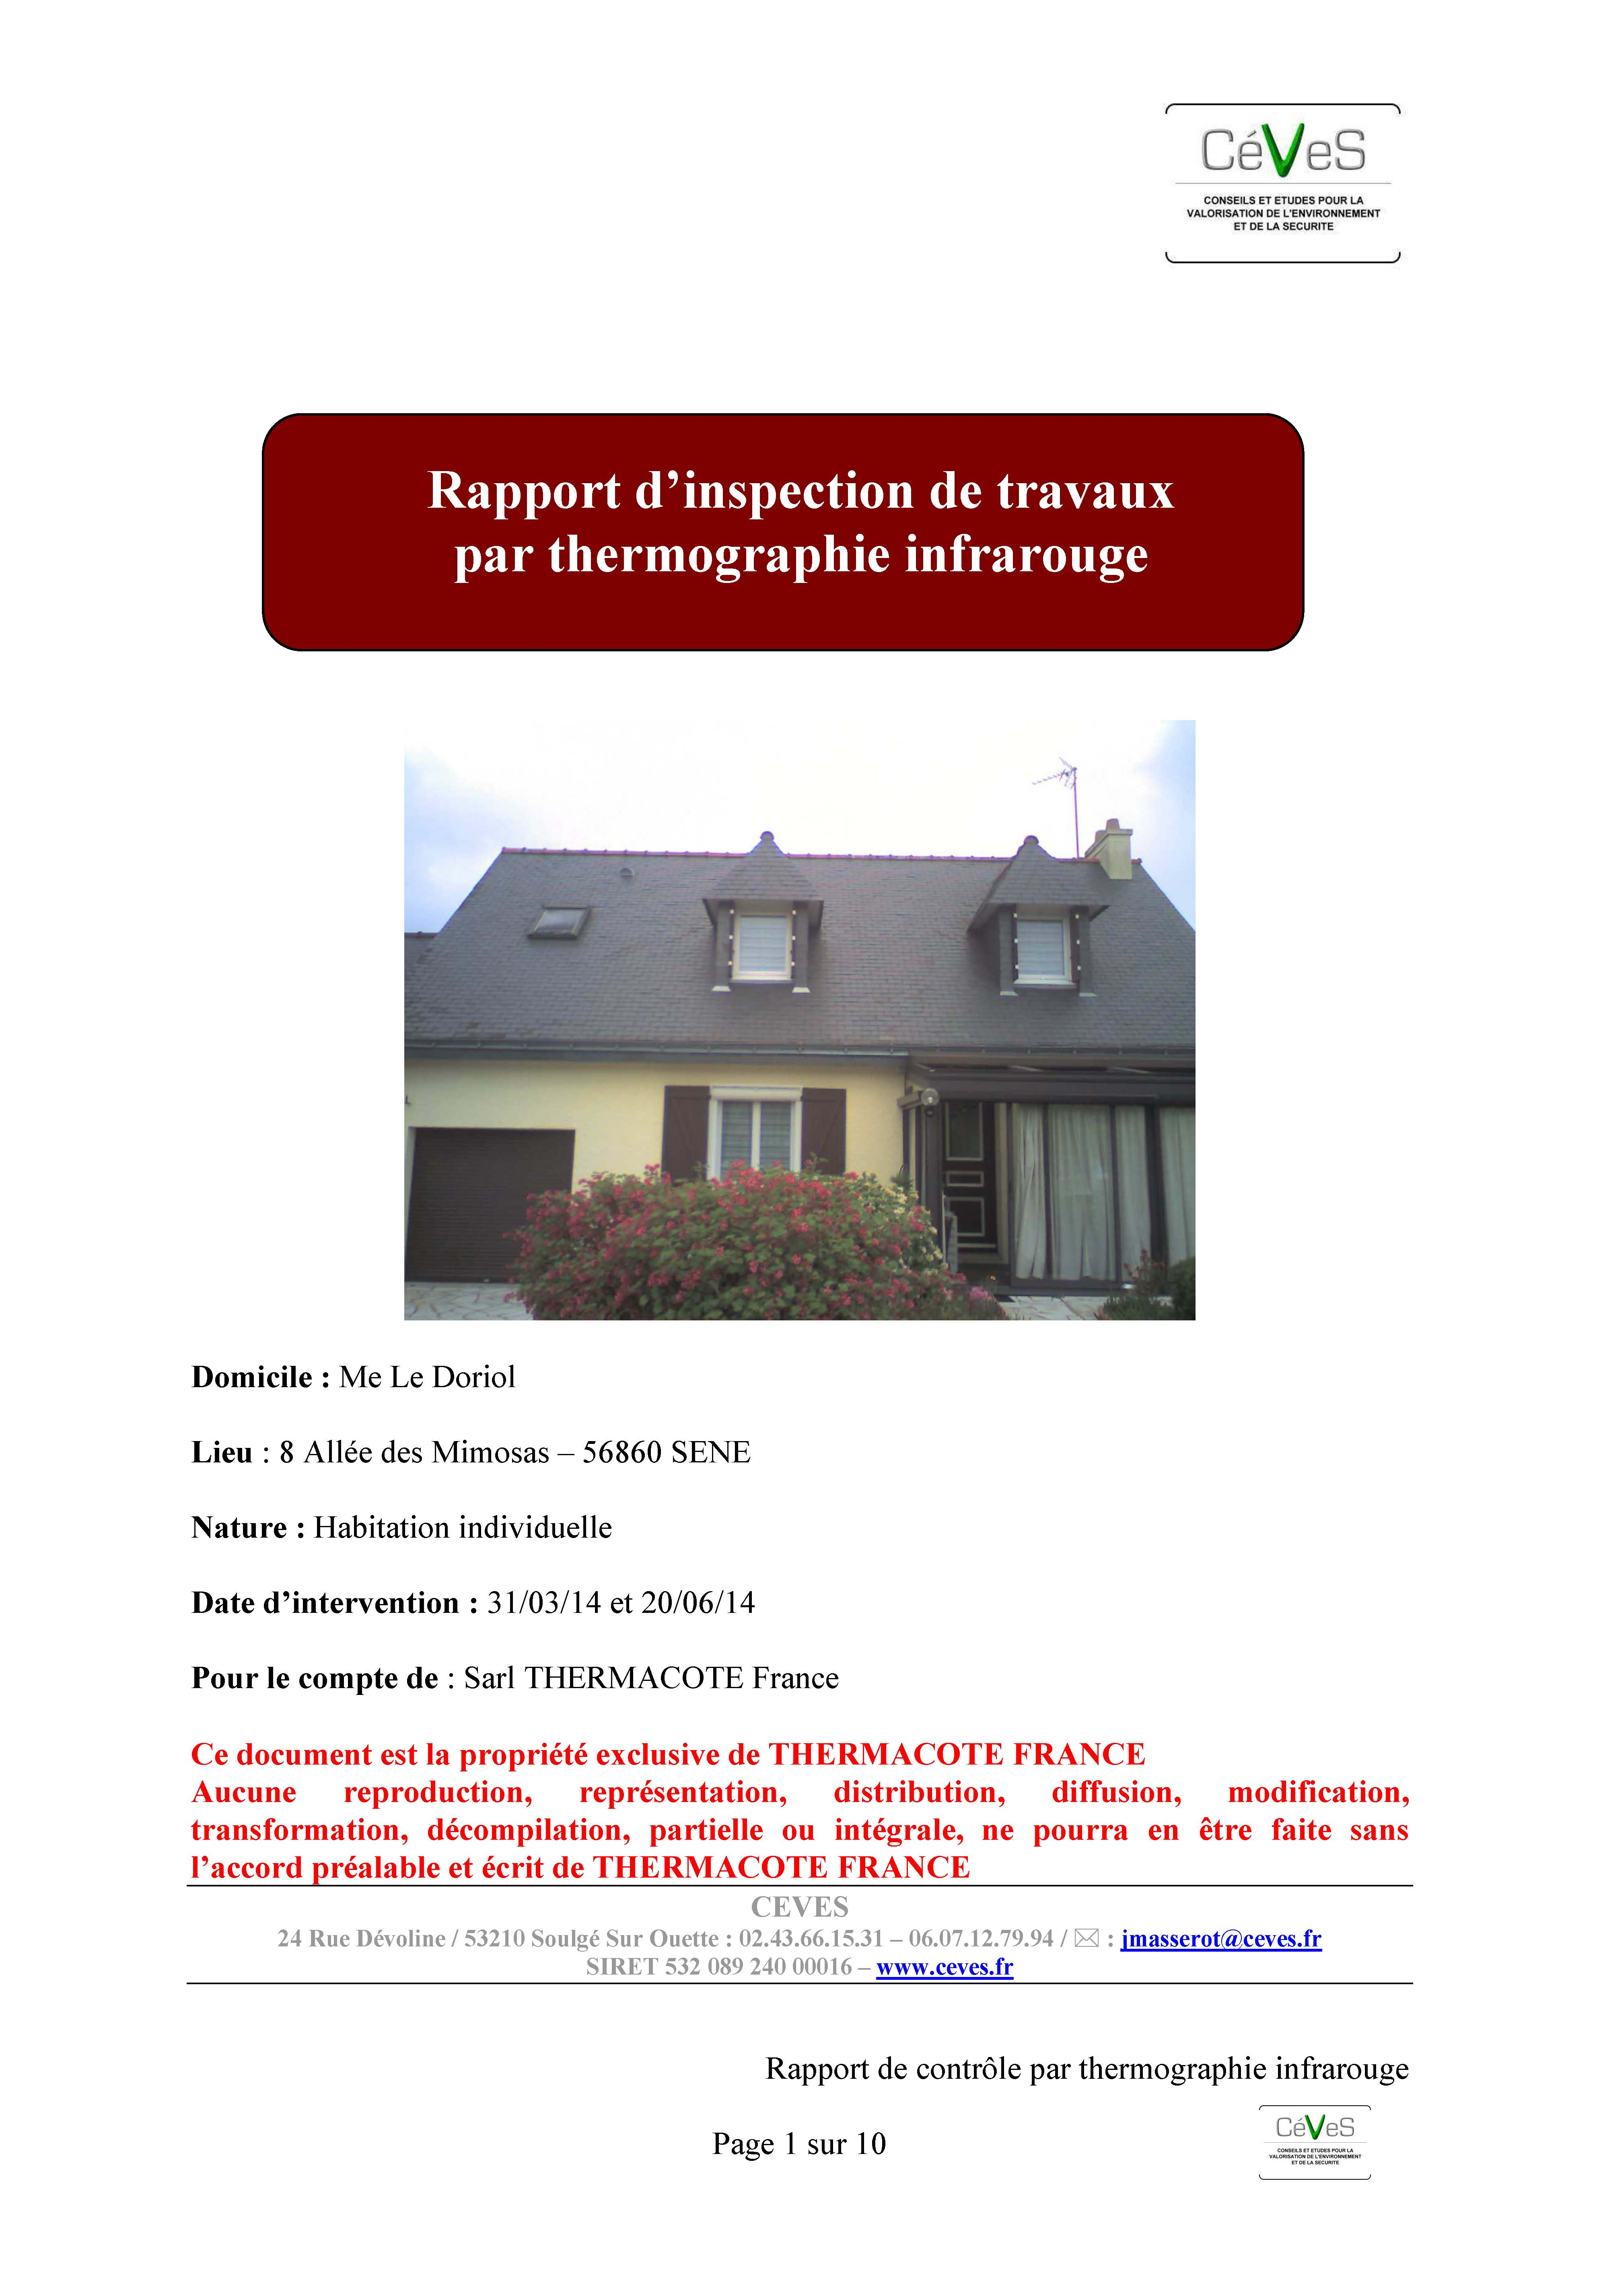 Rapport Complet Thermacote 56xxx-LD (1)_1540313228559